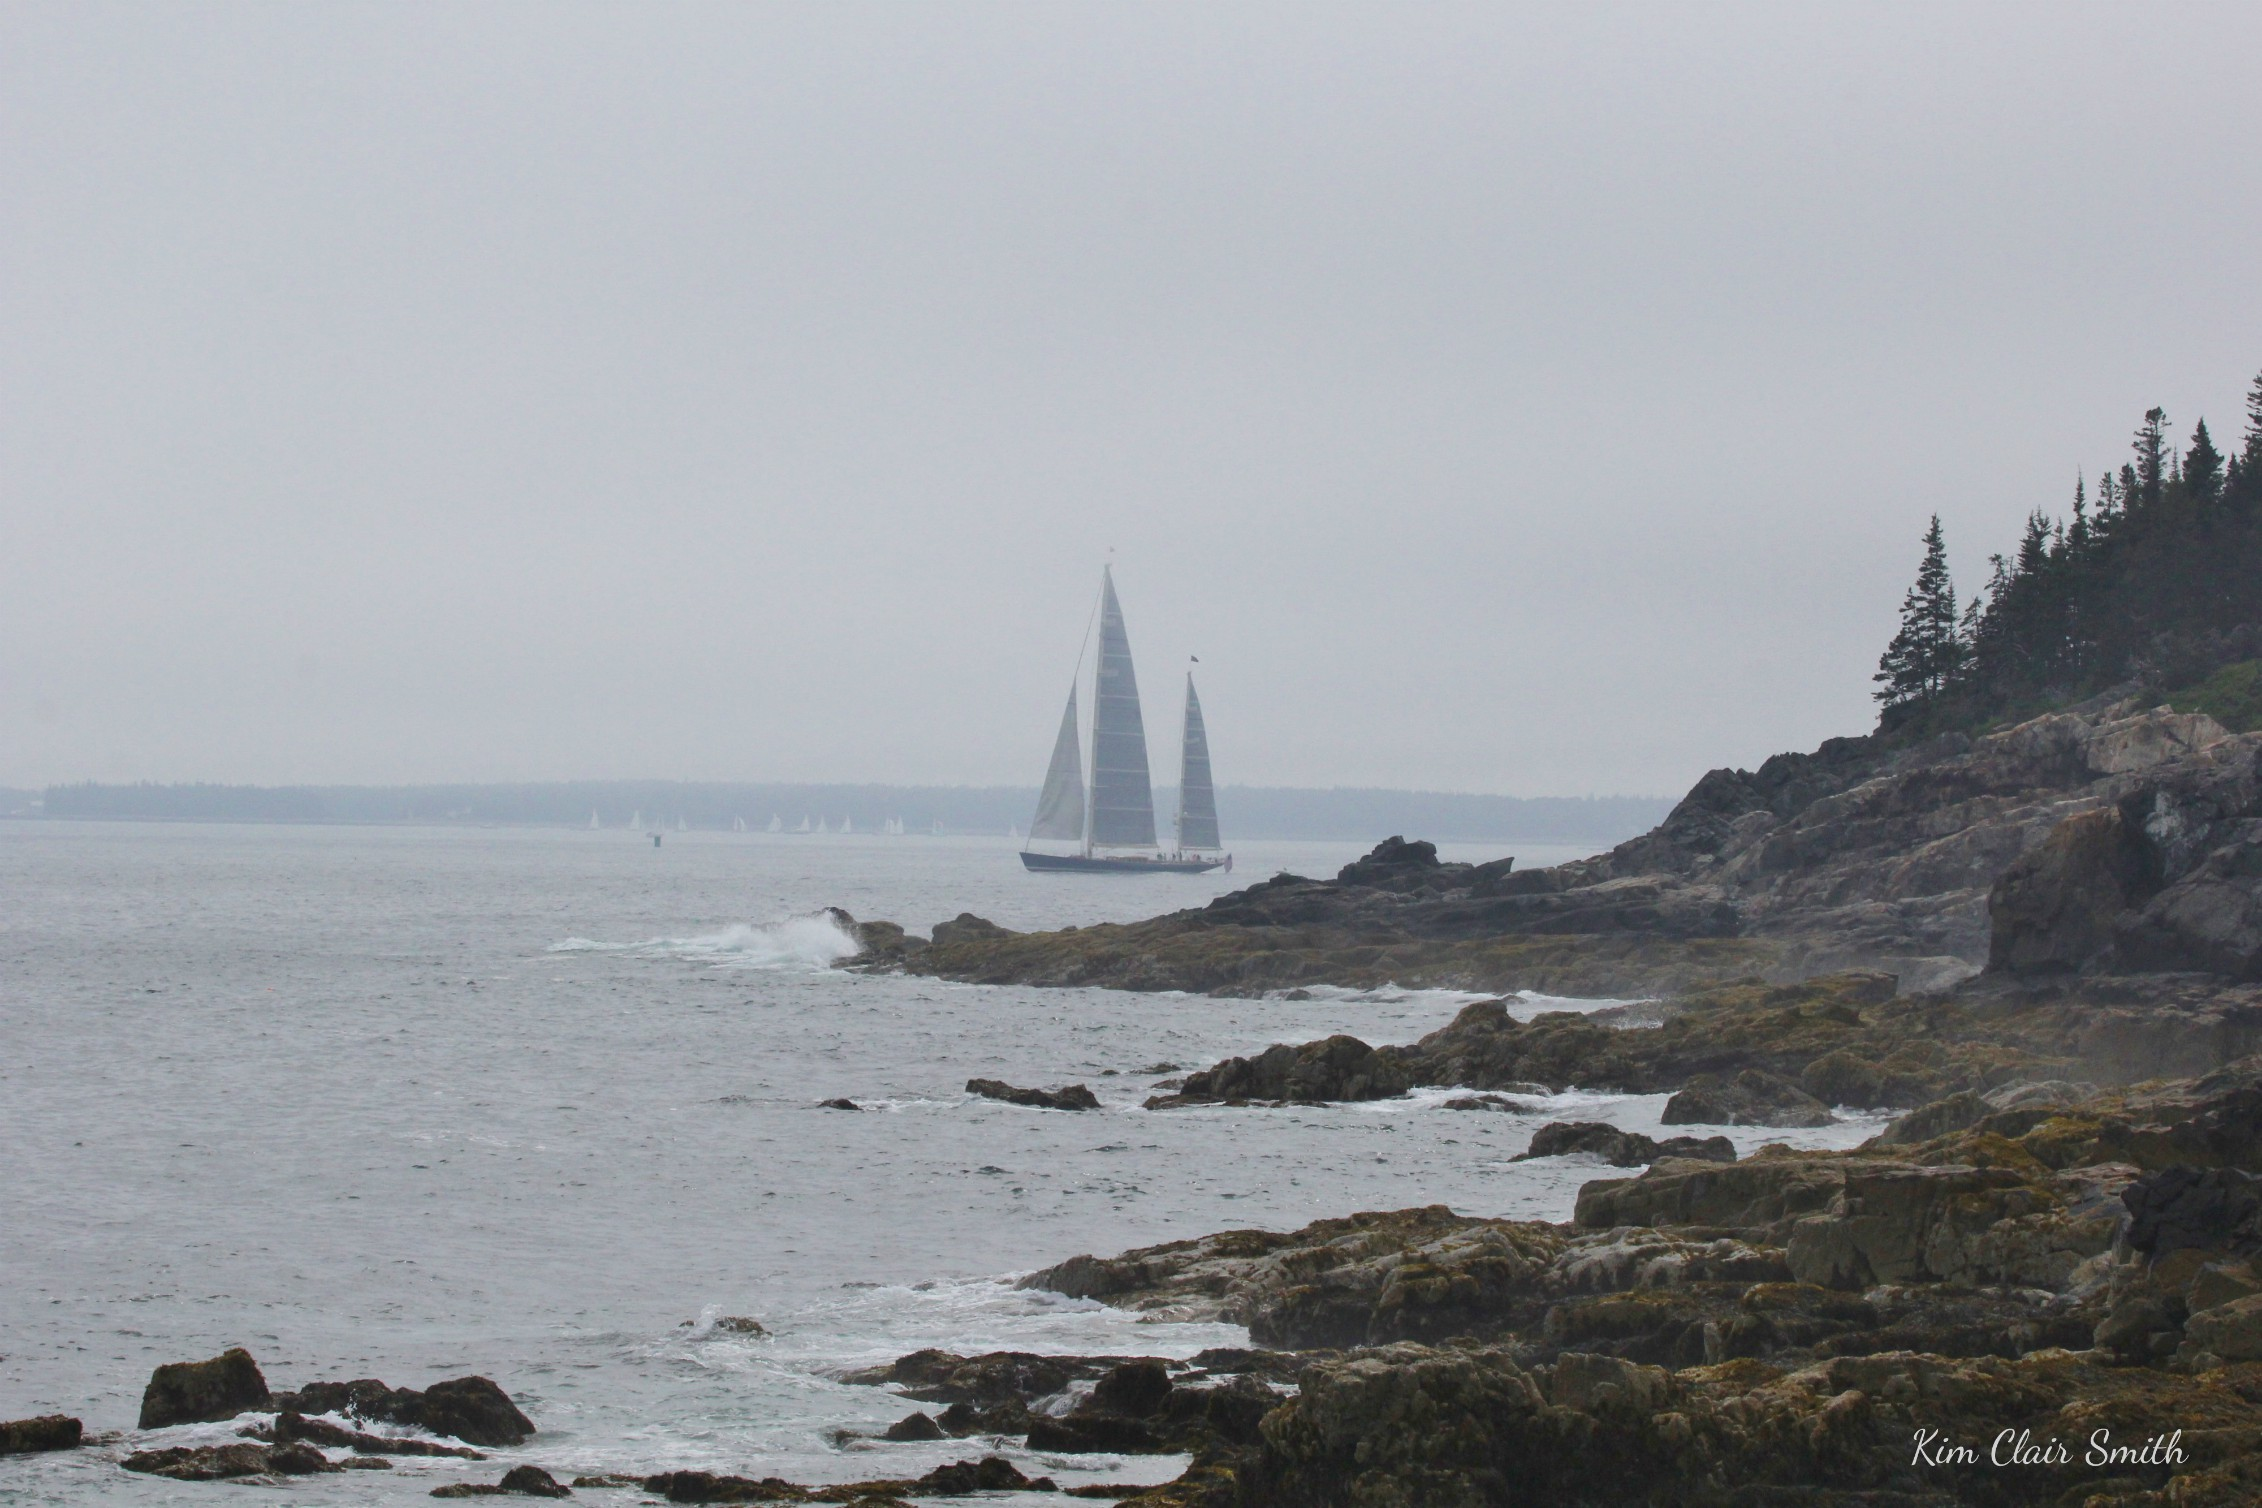 Sailboat in the fog w sig resized for blog